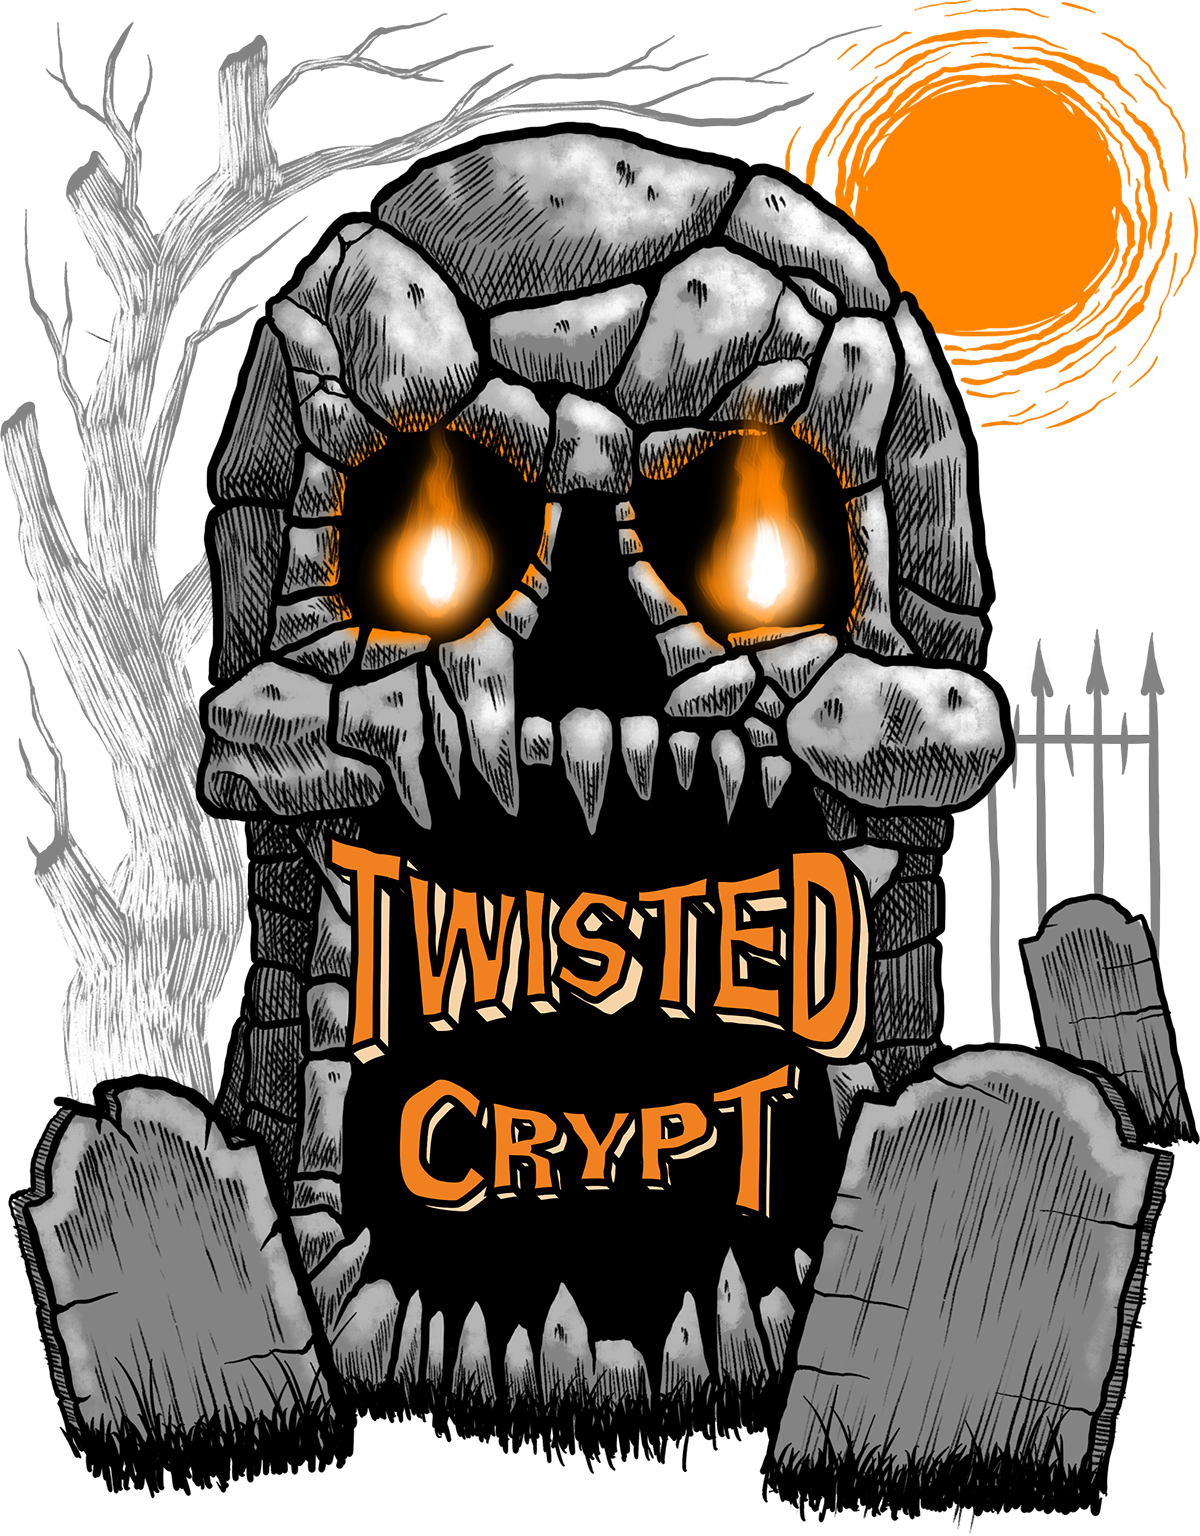 About Twisted Crypt - Twisted Crypt is about to enter it's 7th season!Twisted Crypt Haunted House is 10,000 Square Feet of Indoor Mystery, Chaos, and Fear.  10 Interactive Show Rooms, Sights, Sounds, Smells, and Creatures Lurking Around Every Corner.  Will you be able to escape?